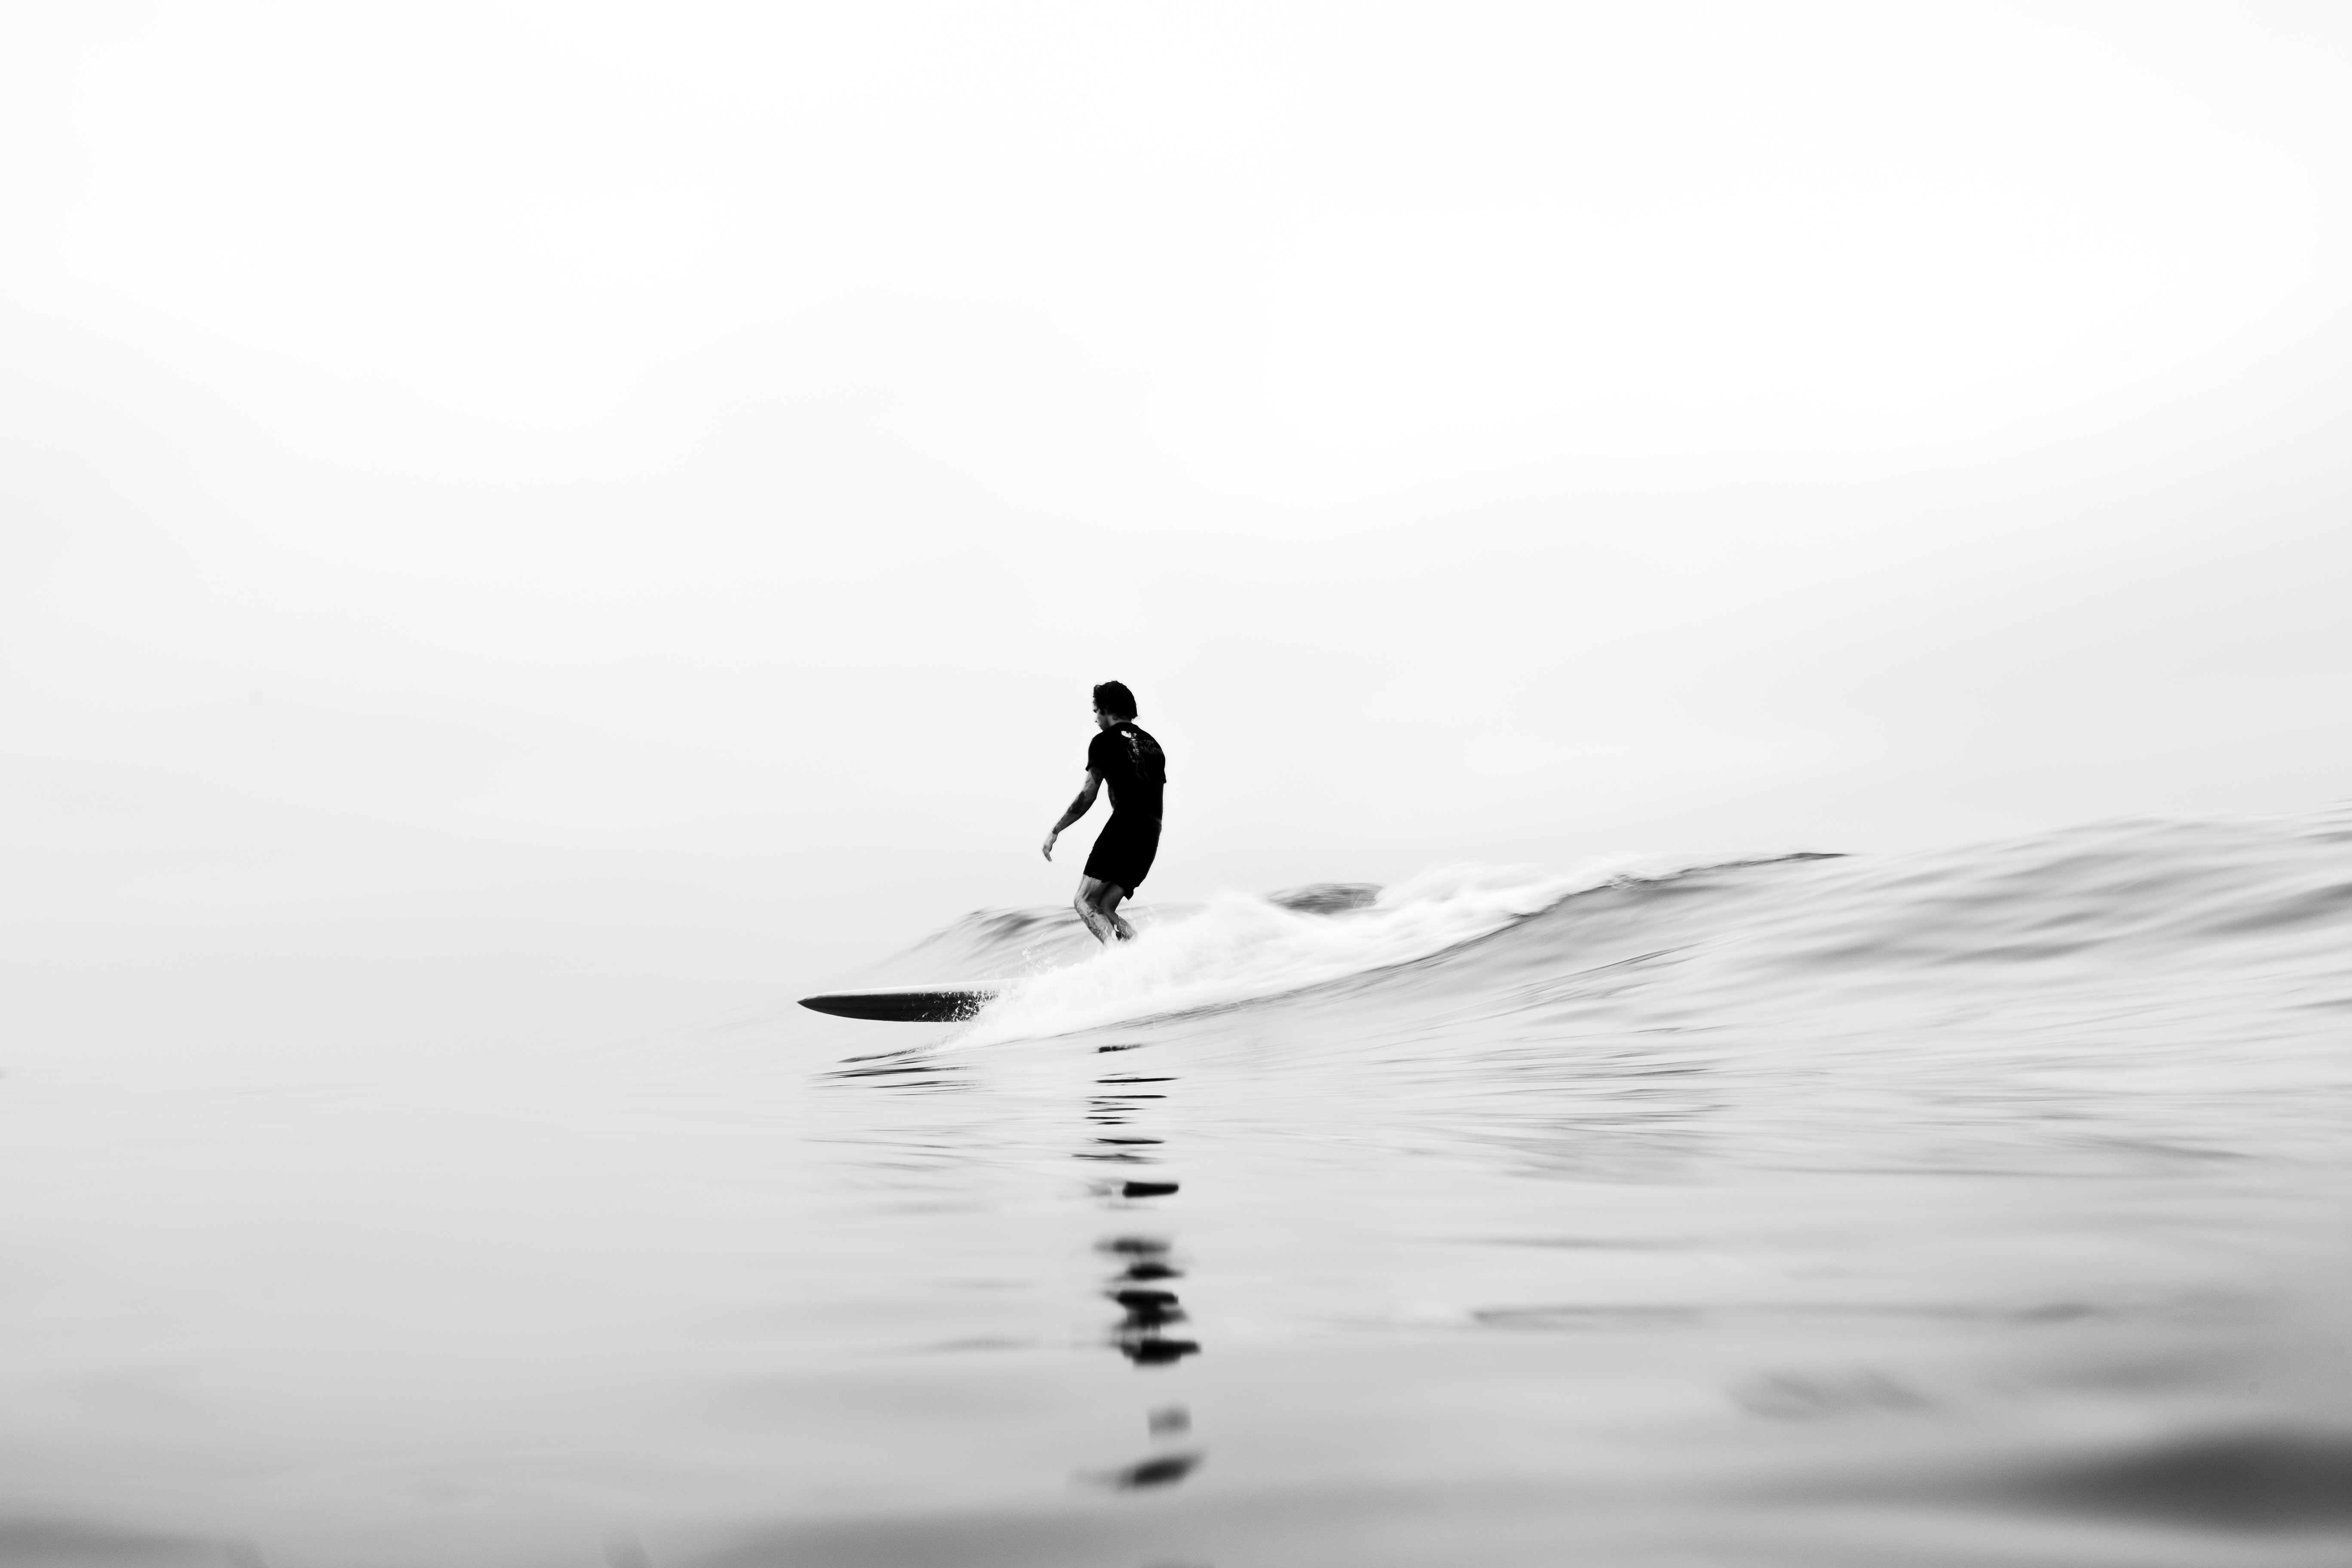 grayscale photo of man riding surfboard on water